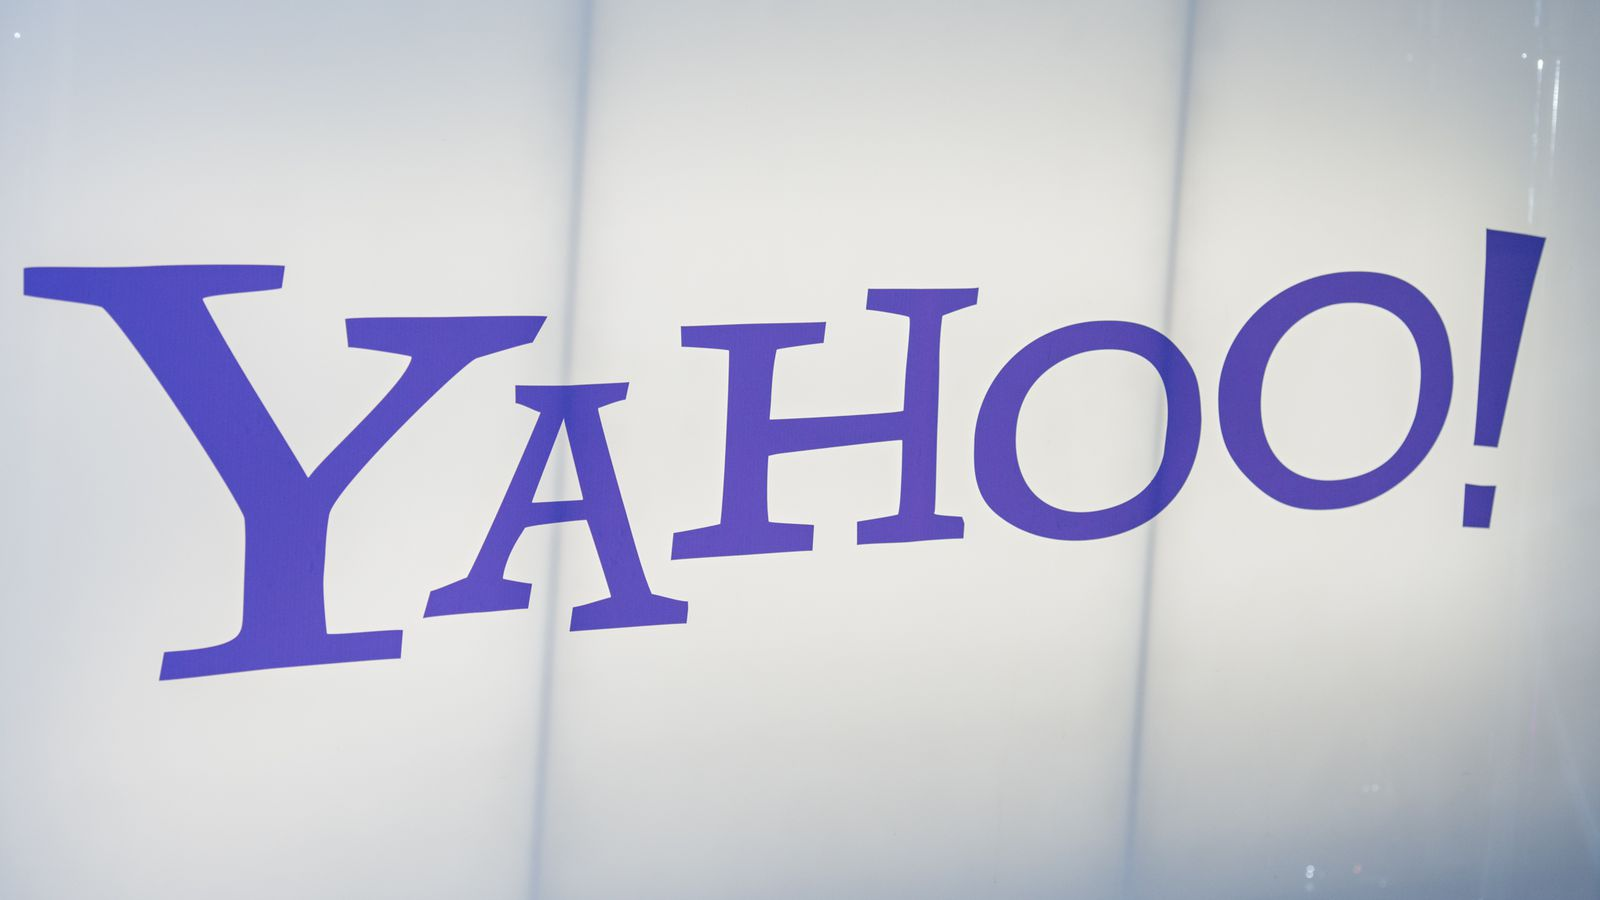 Yahoo Directory, once the center of a web empire, will shut down at year's end - The Verge